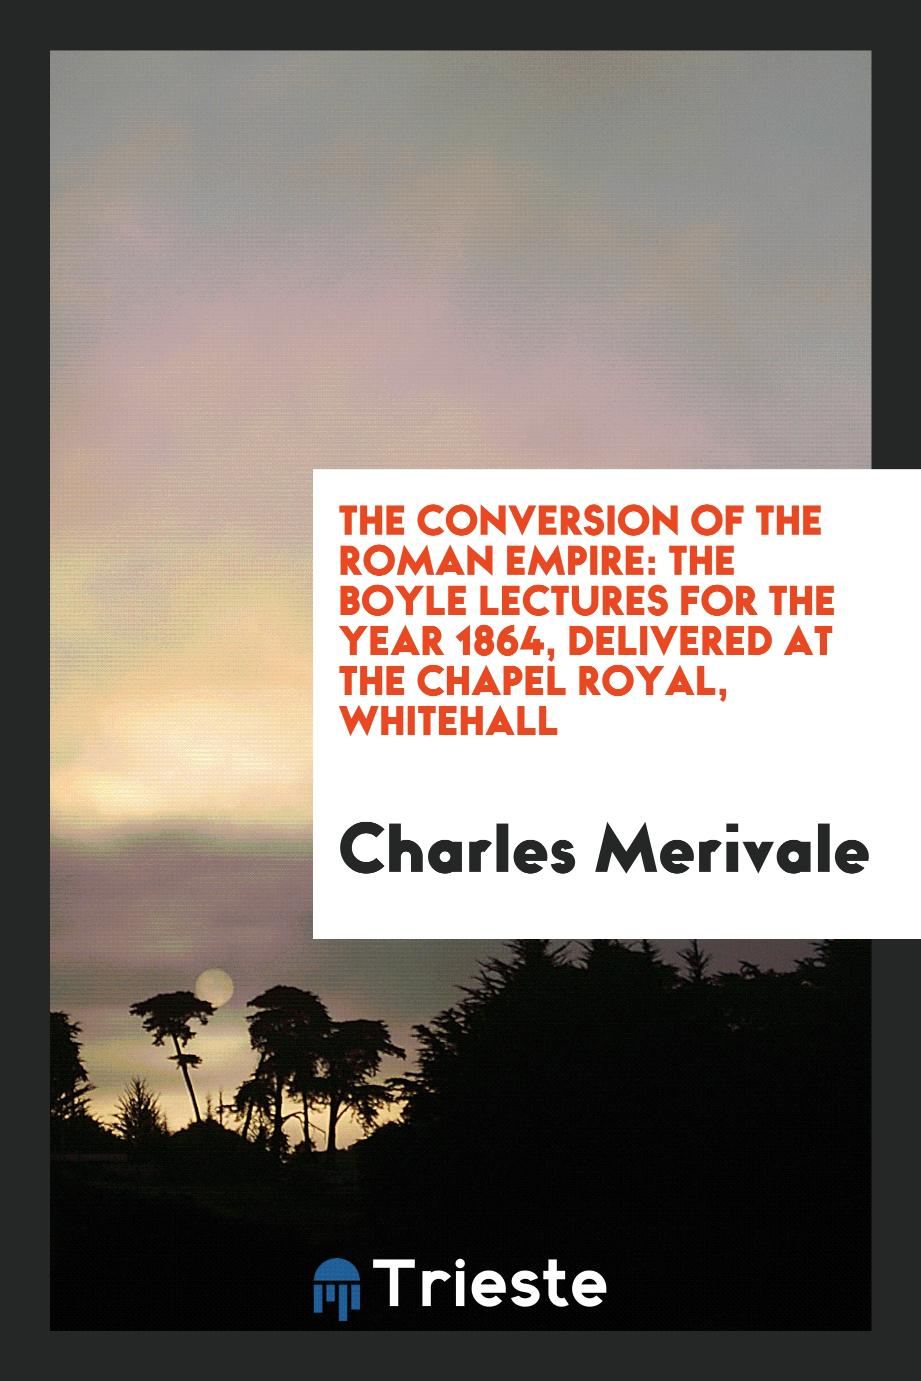 The Conversion of the Roman Empire: The Boyle Lectures for the Year 1864, Delivered at the Chapel Royal, Whitehall